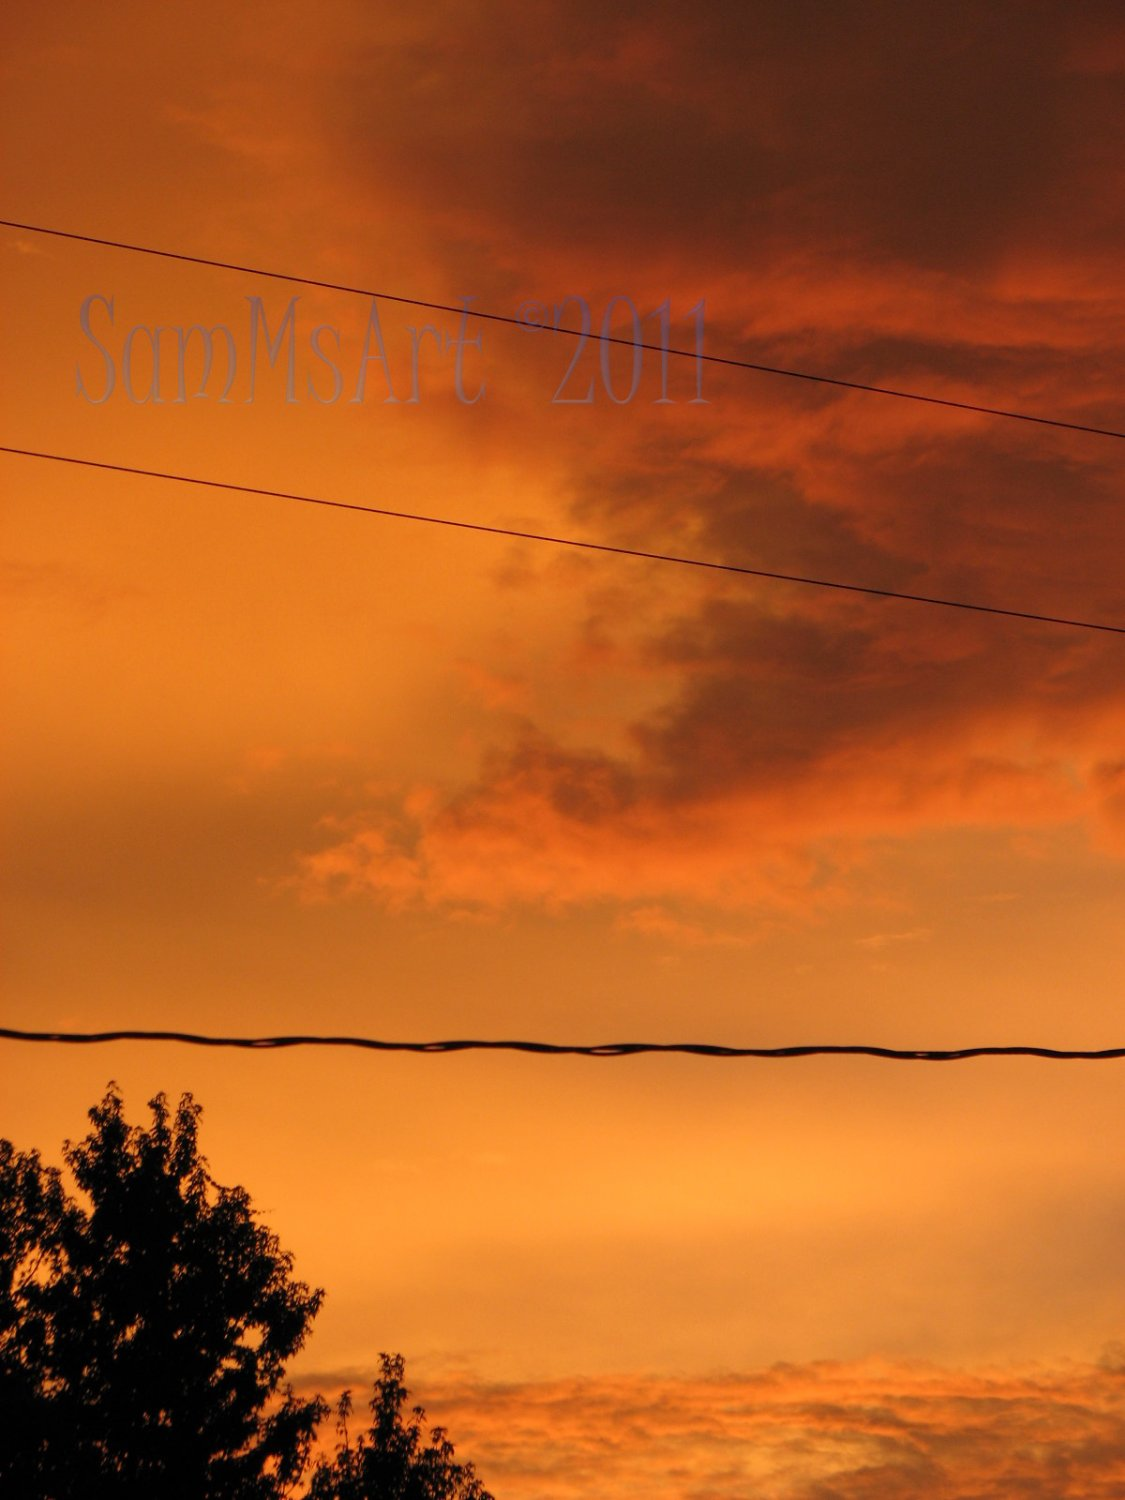 August 8 - 8x10 Print, Digital Fine Art Image Photo - Sunset, summer, fall, Power lines, Clouds